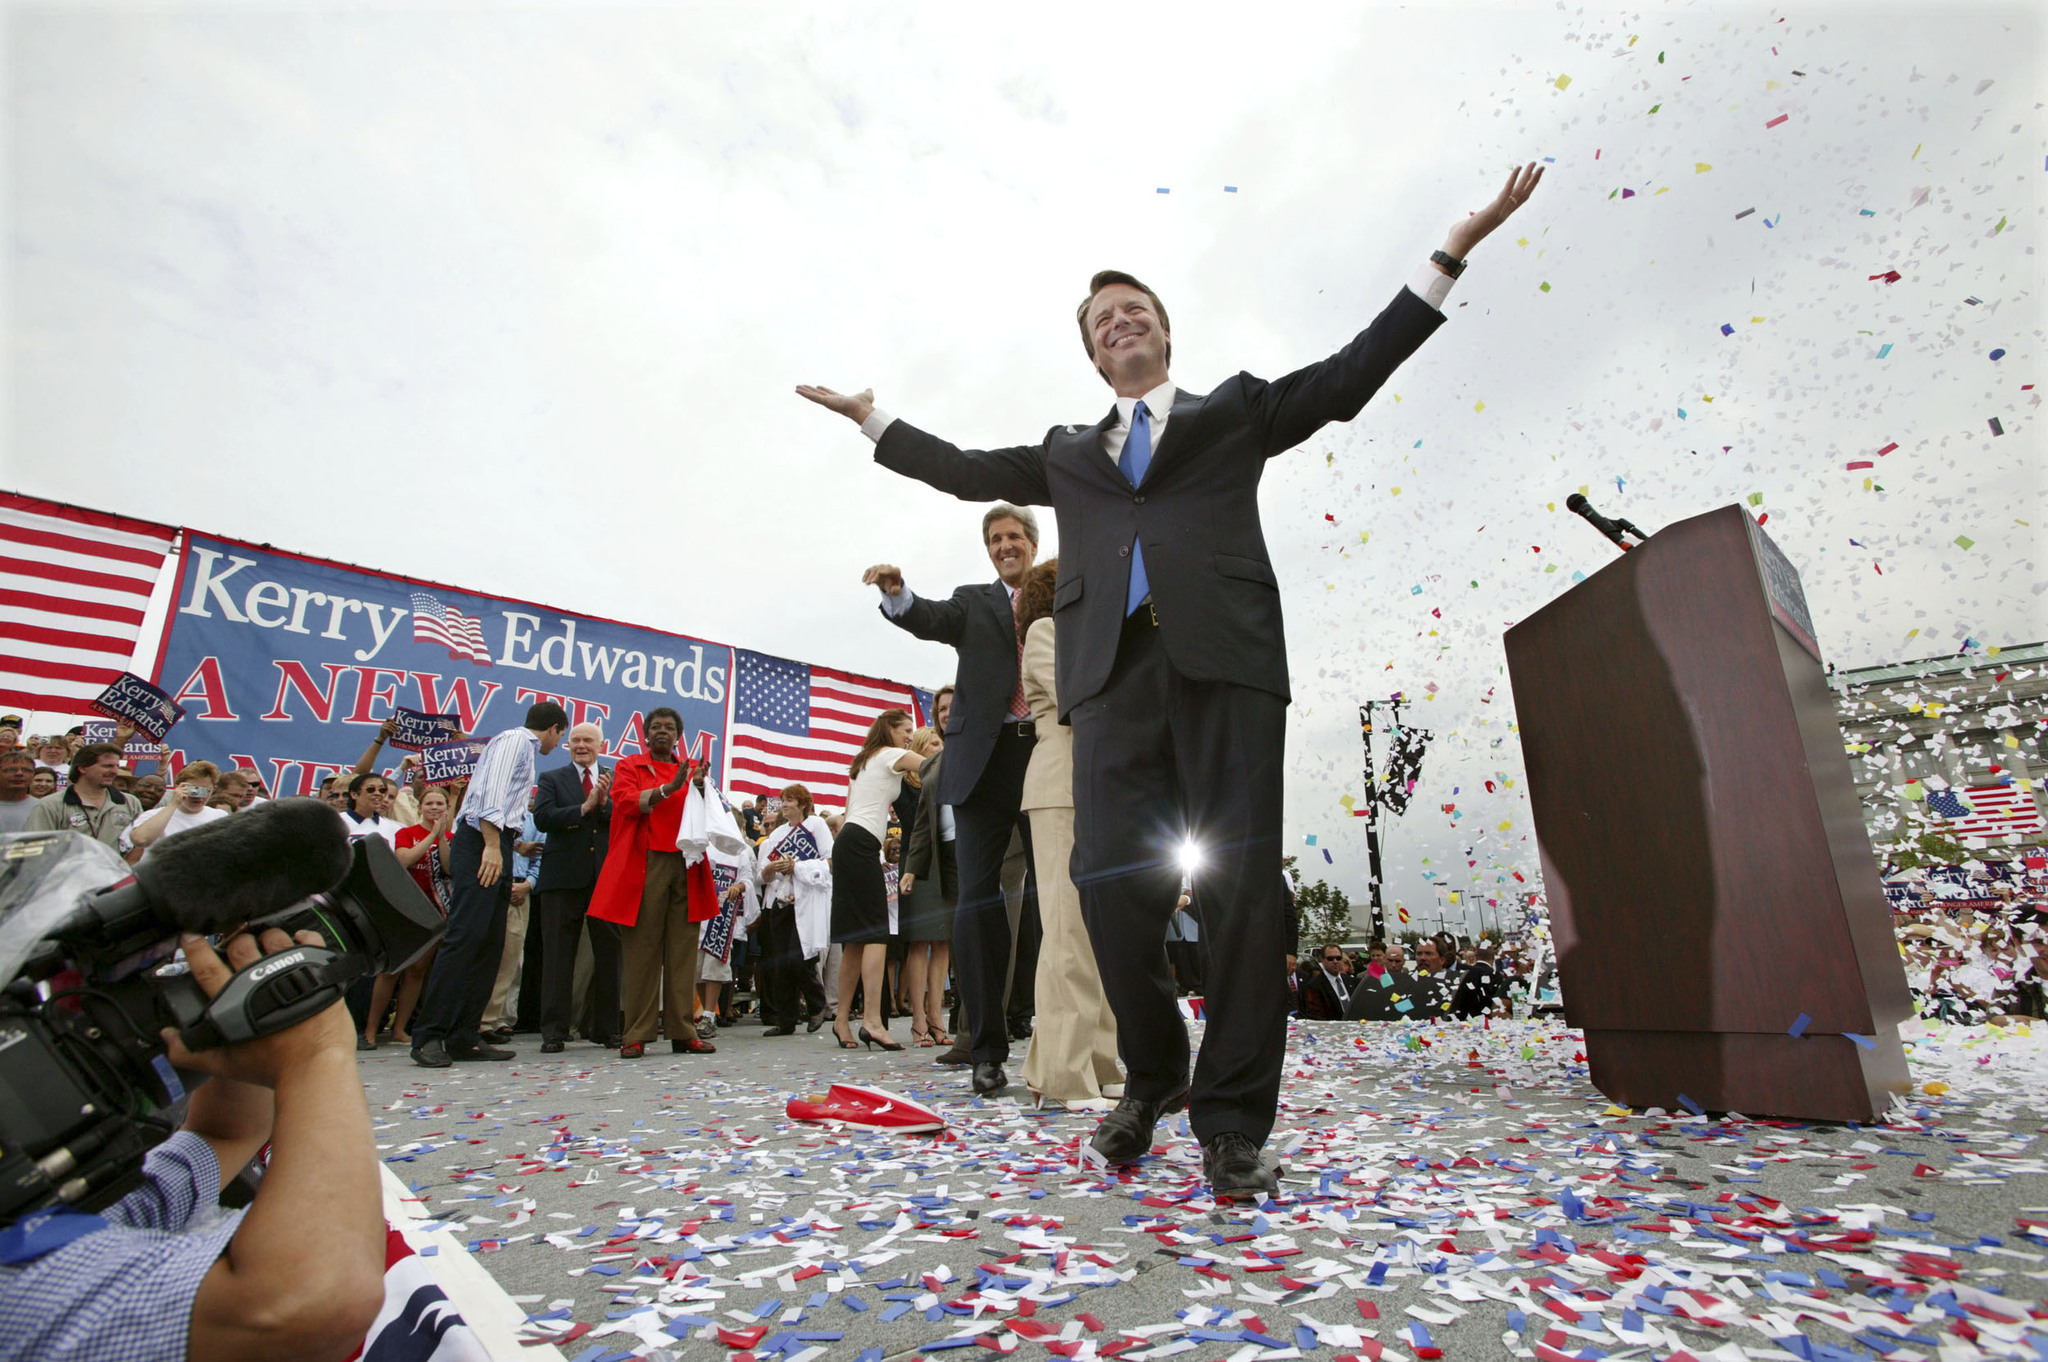 John Kerry and John Edwards, Democratic Presidential and Vice Presidential Candidates, at a Rally, Cleveland, Ohio